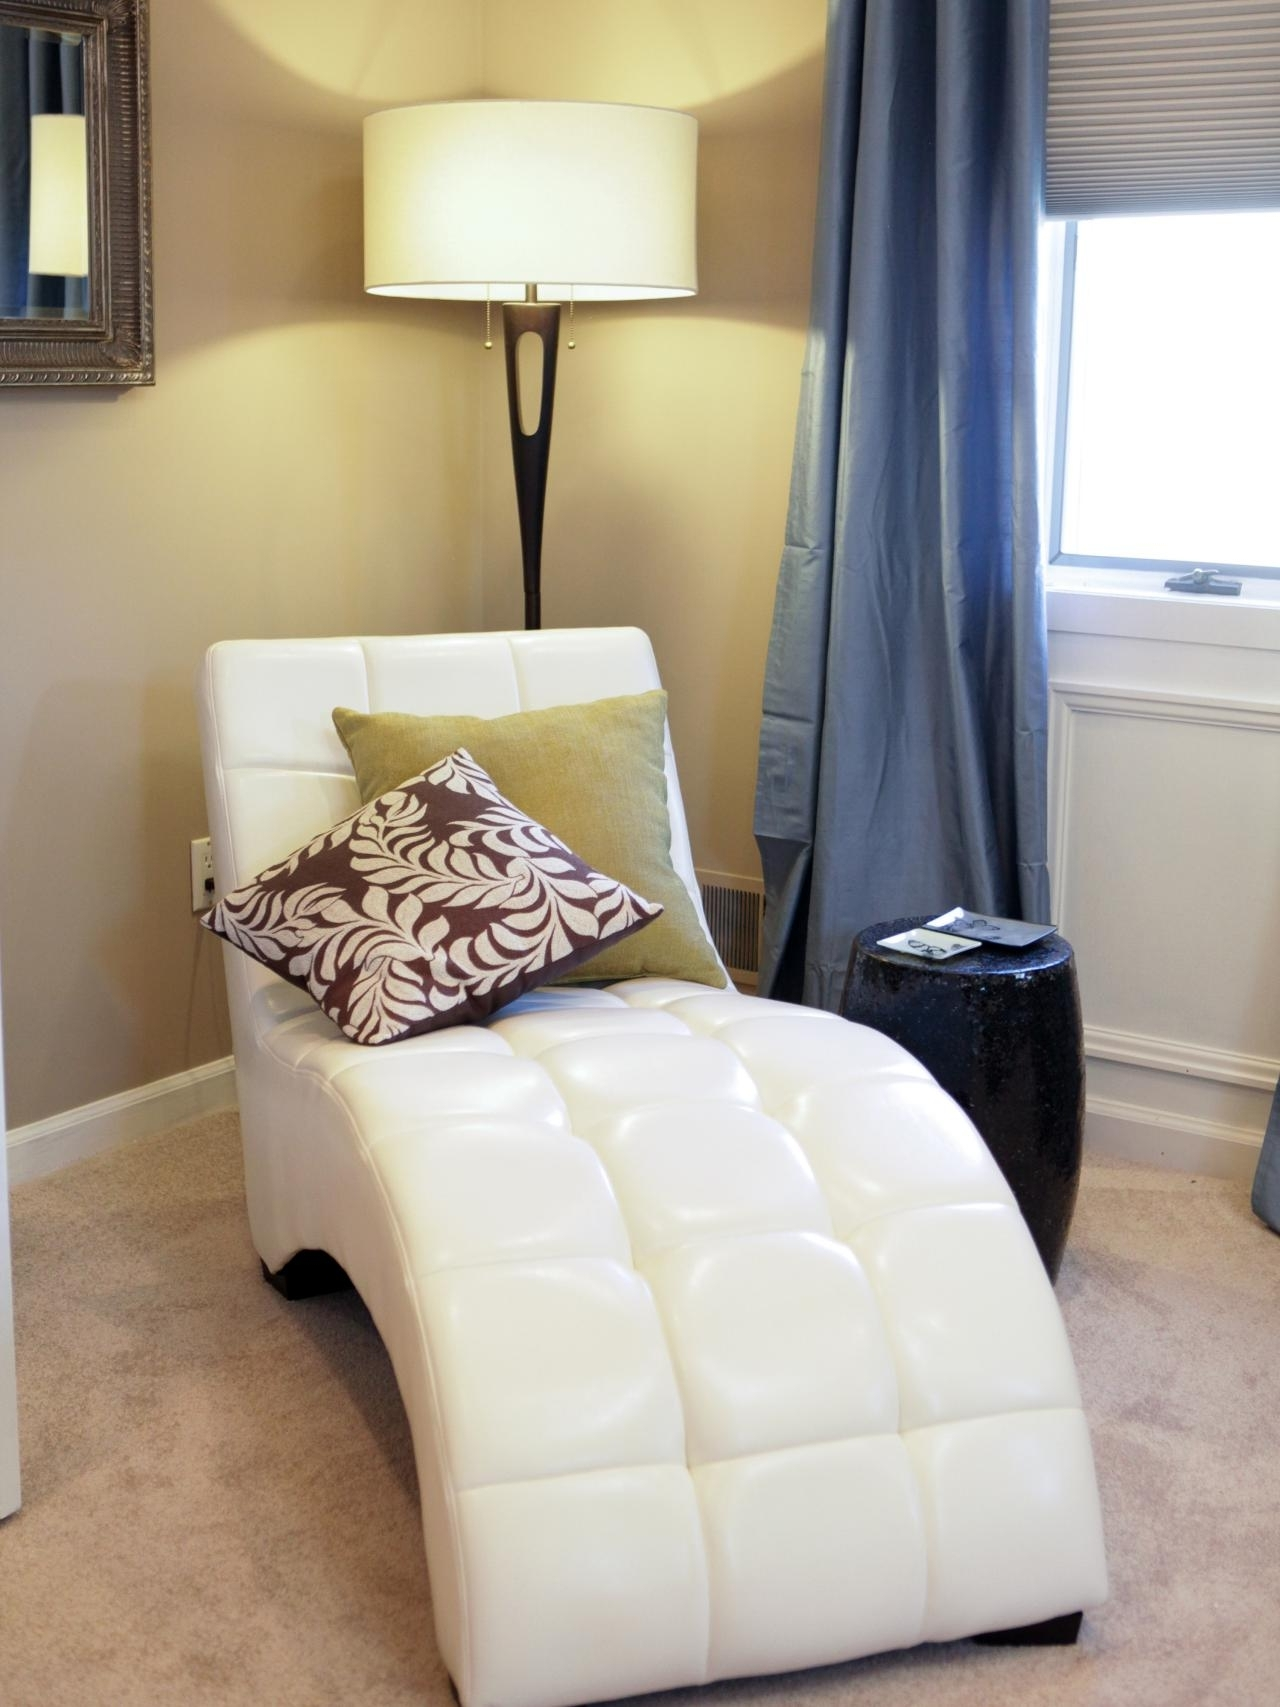 Famous White Leather Chaises Inside White Leather Chaise Lounge – White Leather Chaise Lounge, Ikea (View 5 of 15)